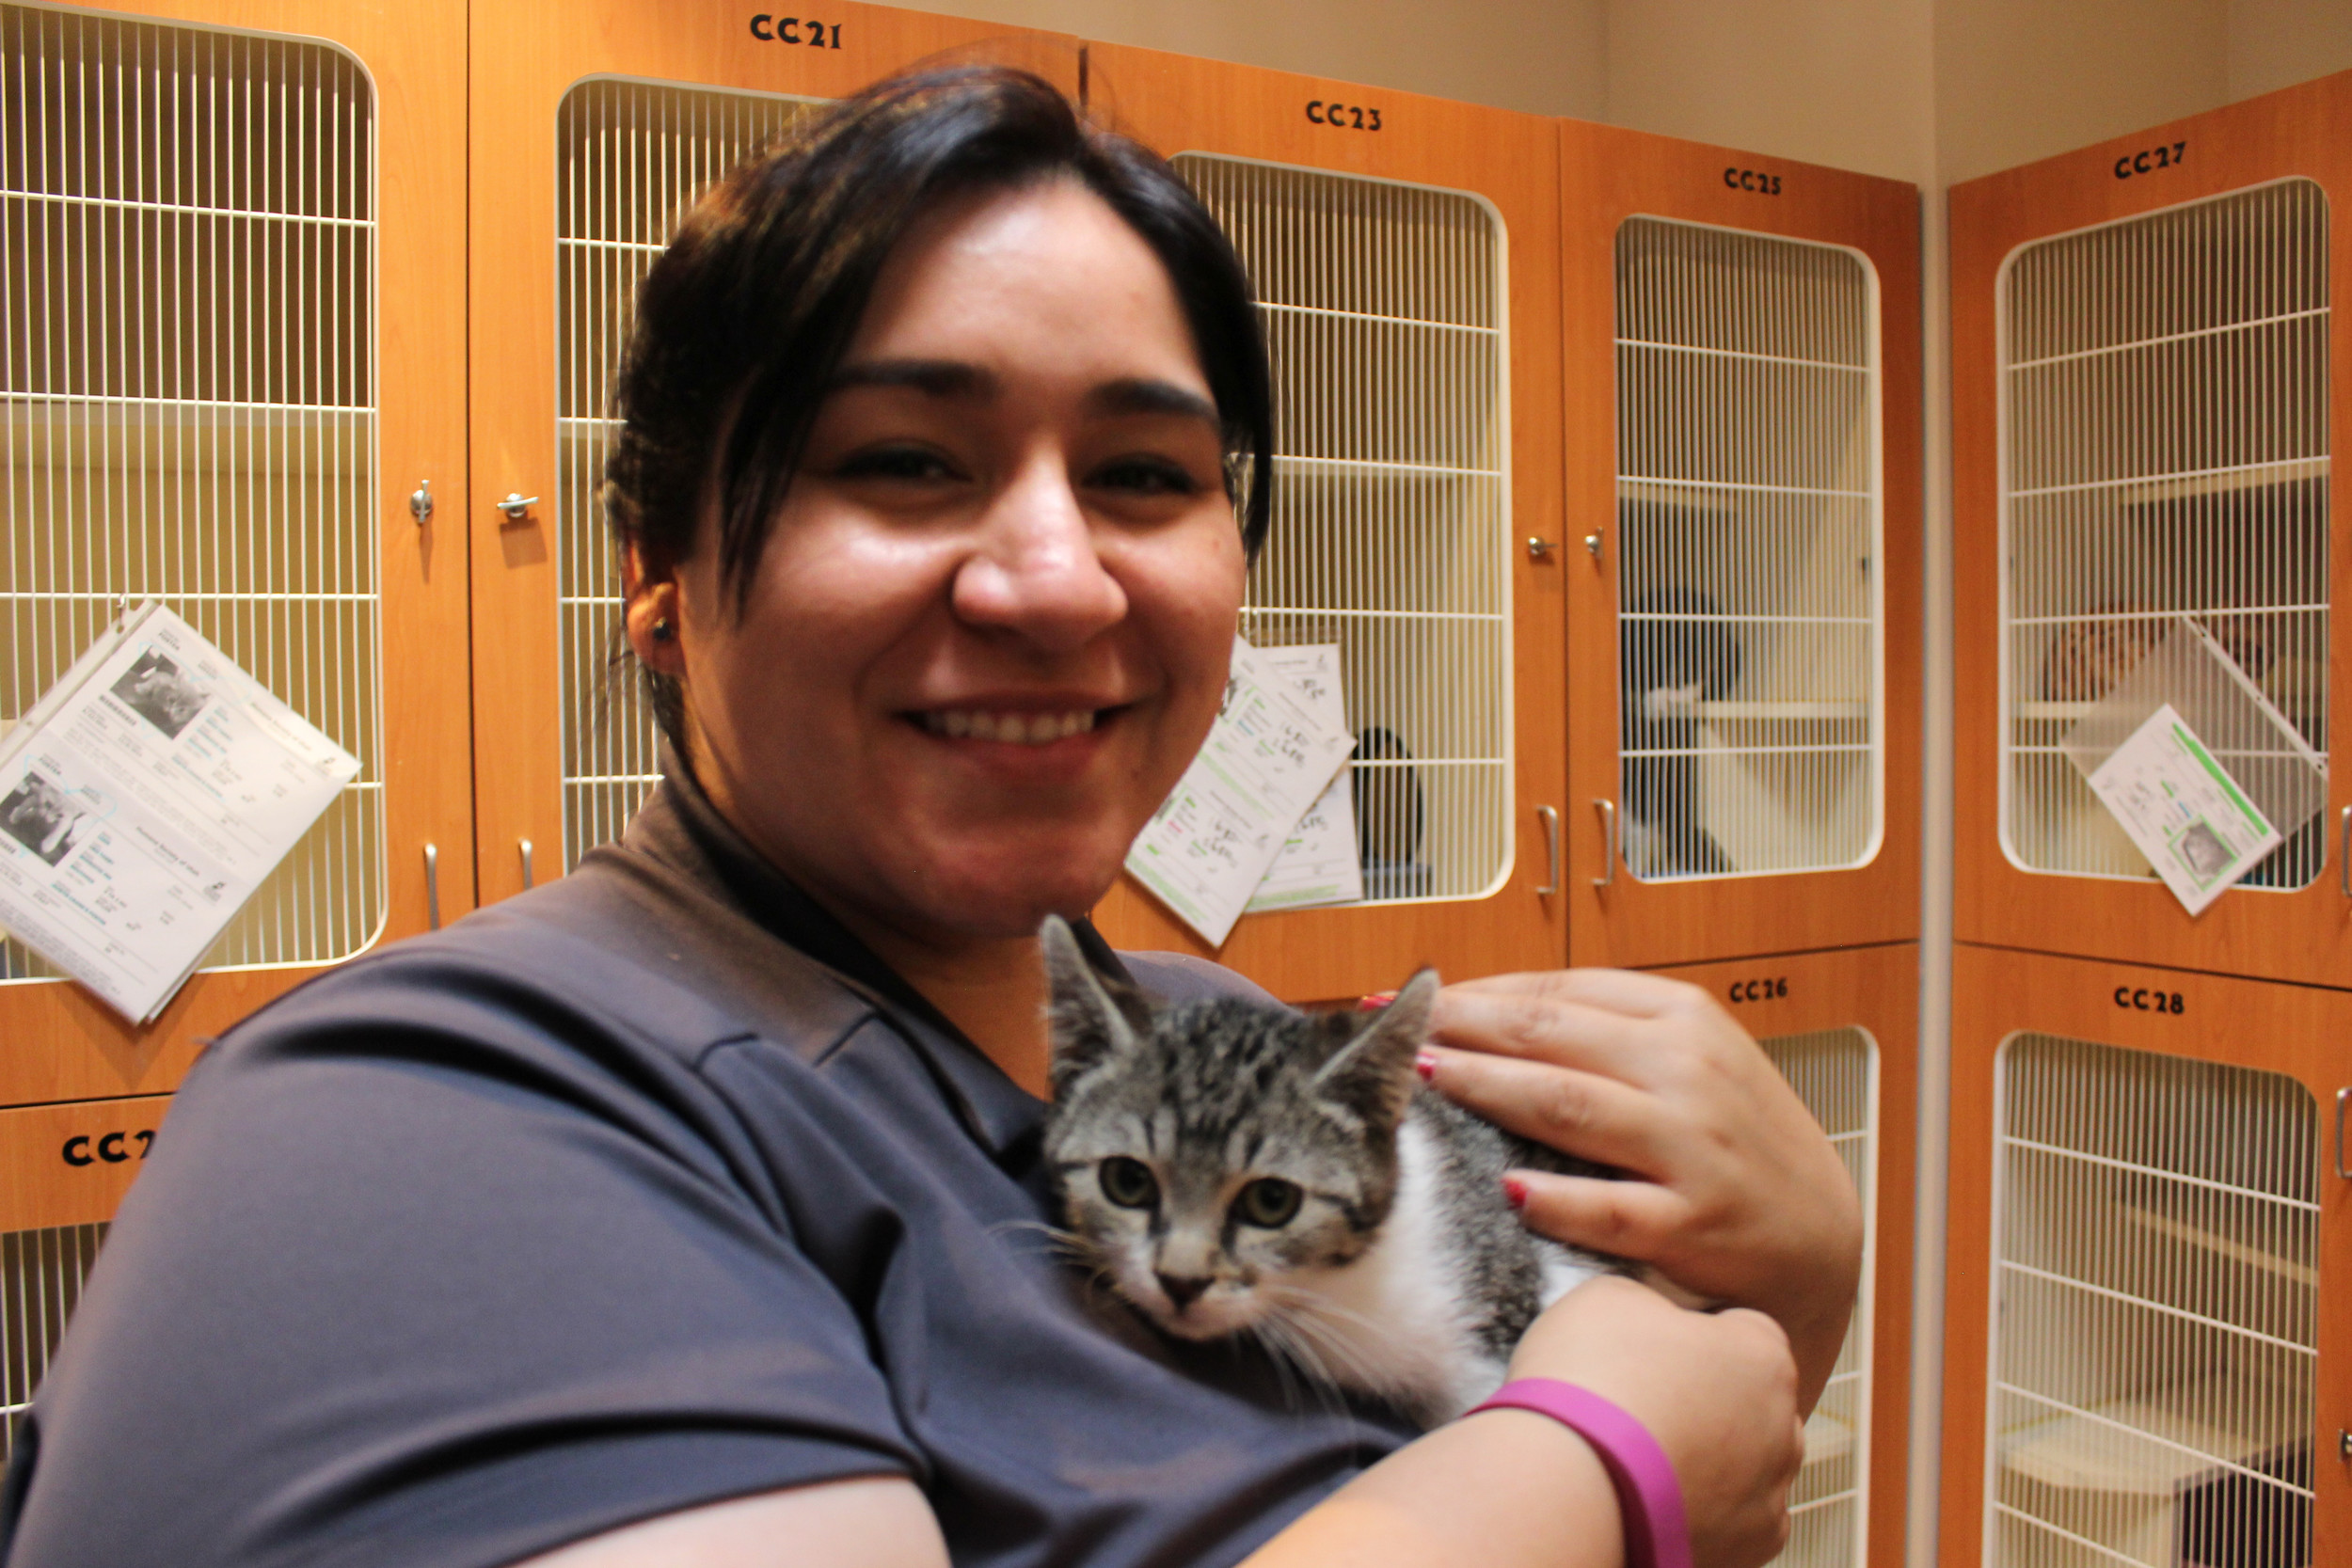 Student Life Coordinator and Housing Program Manager Corrine Padilla volunteers with the Society of Women Engineers at the Utah Humane Society.